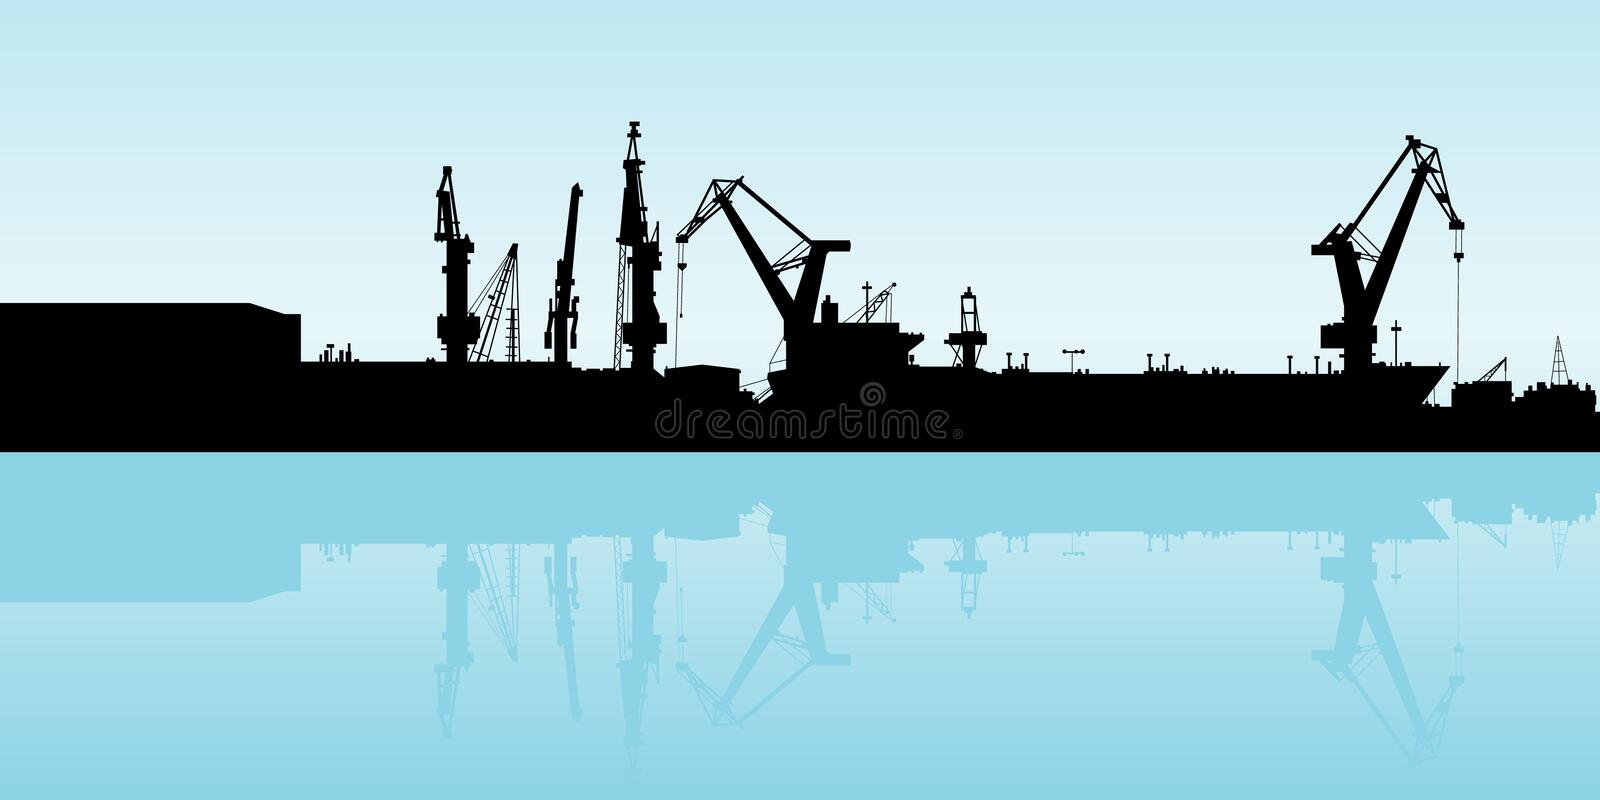 Shipping Port. Cranes working at the port in Veracruz, Mexico royalty free illustration